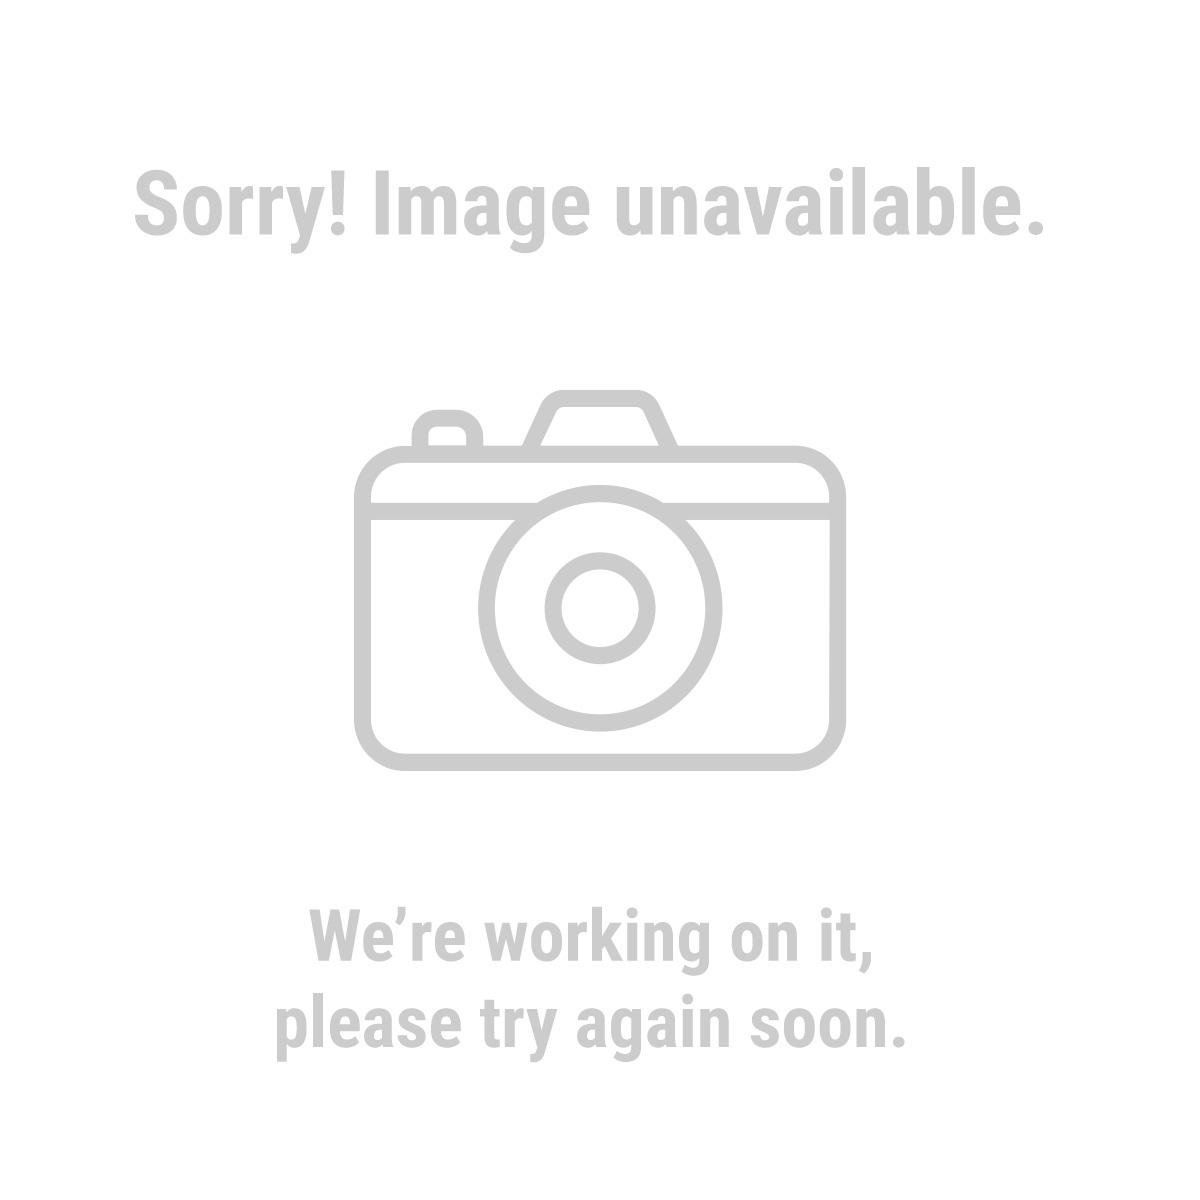 "Haul-Master 66361 4"" x 7/8"" Rubber Swivel Caster"